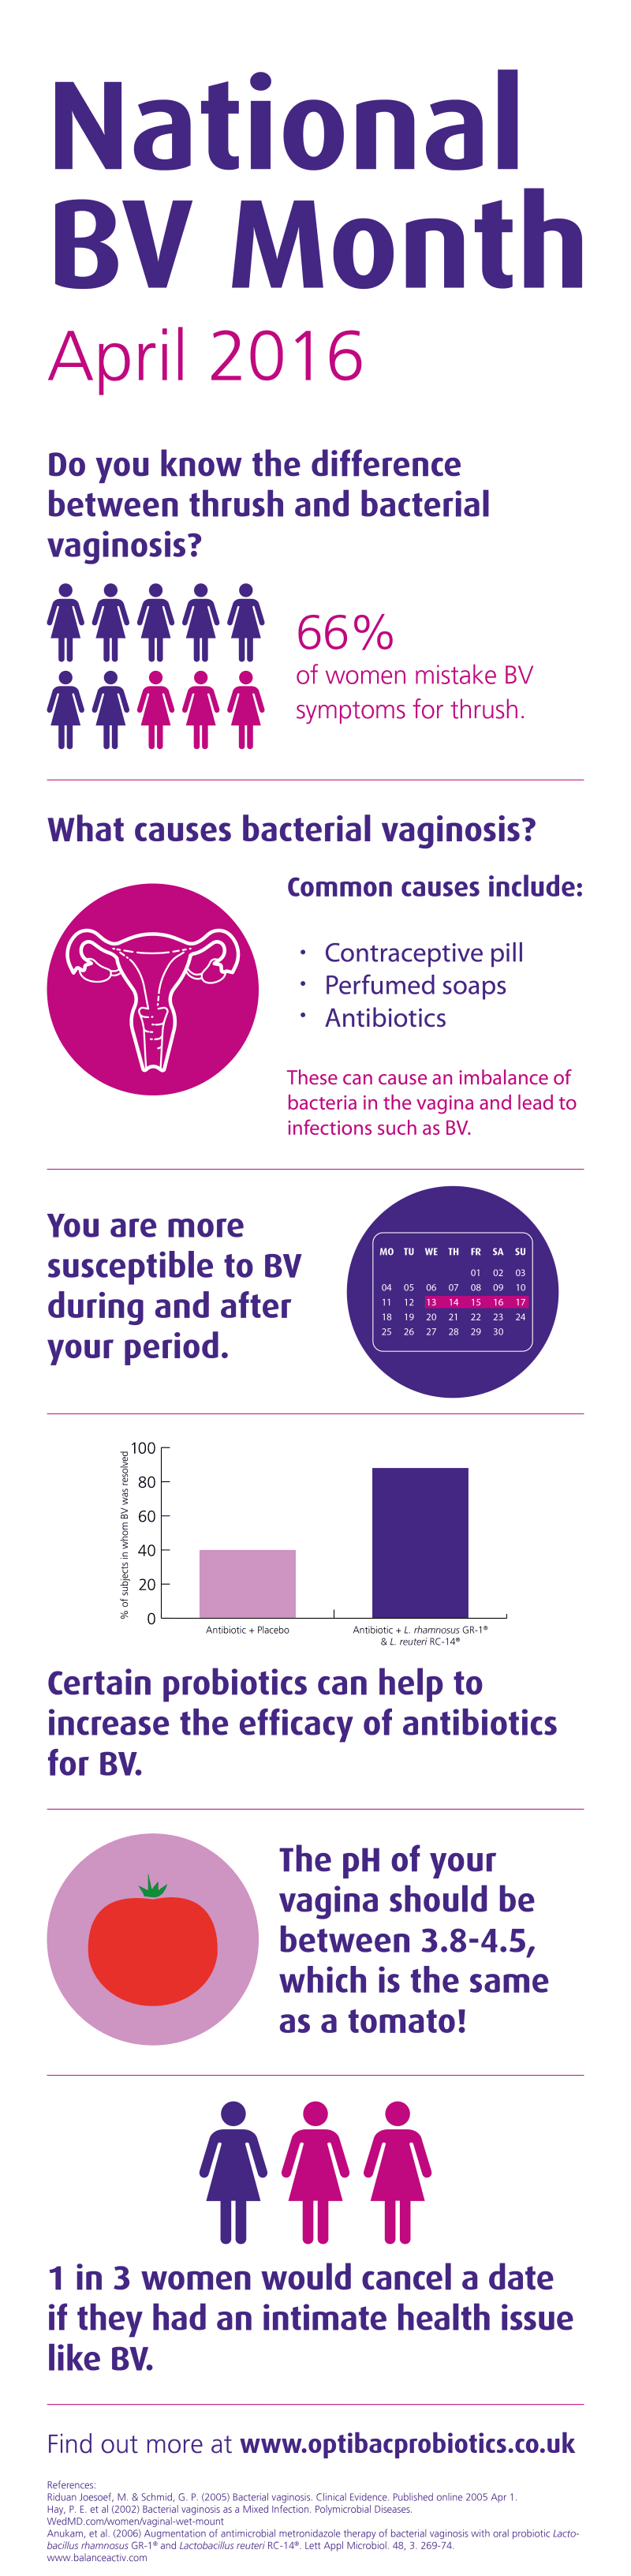 National BV Month: Infographic